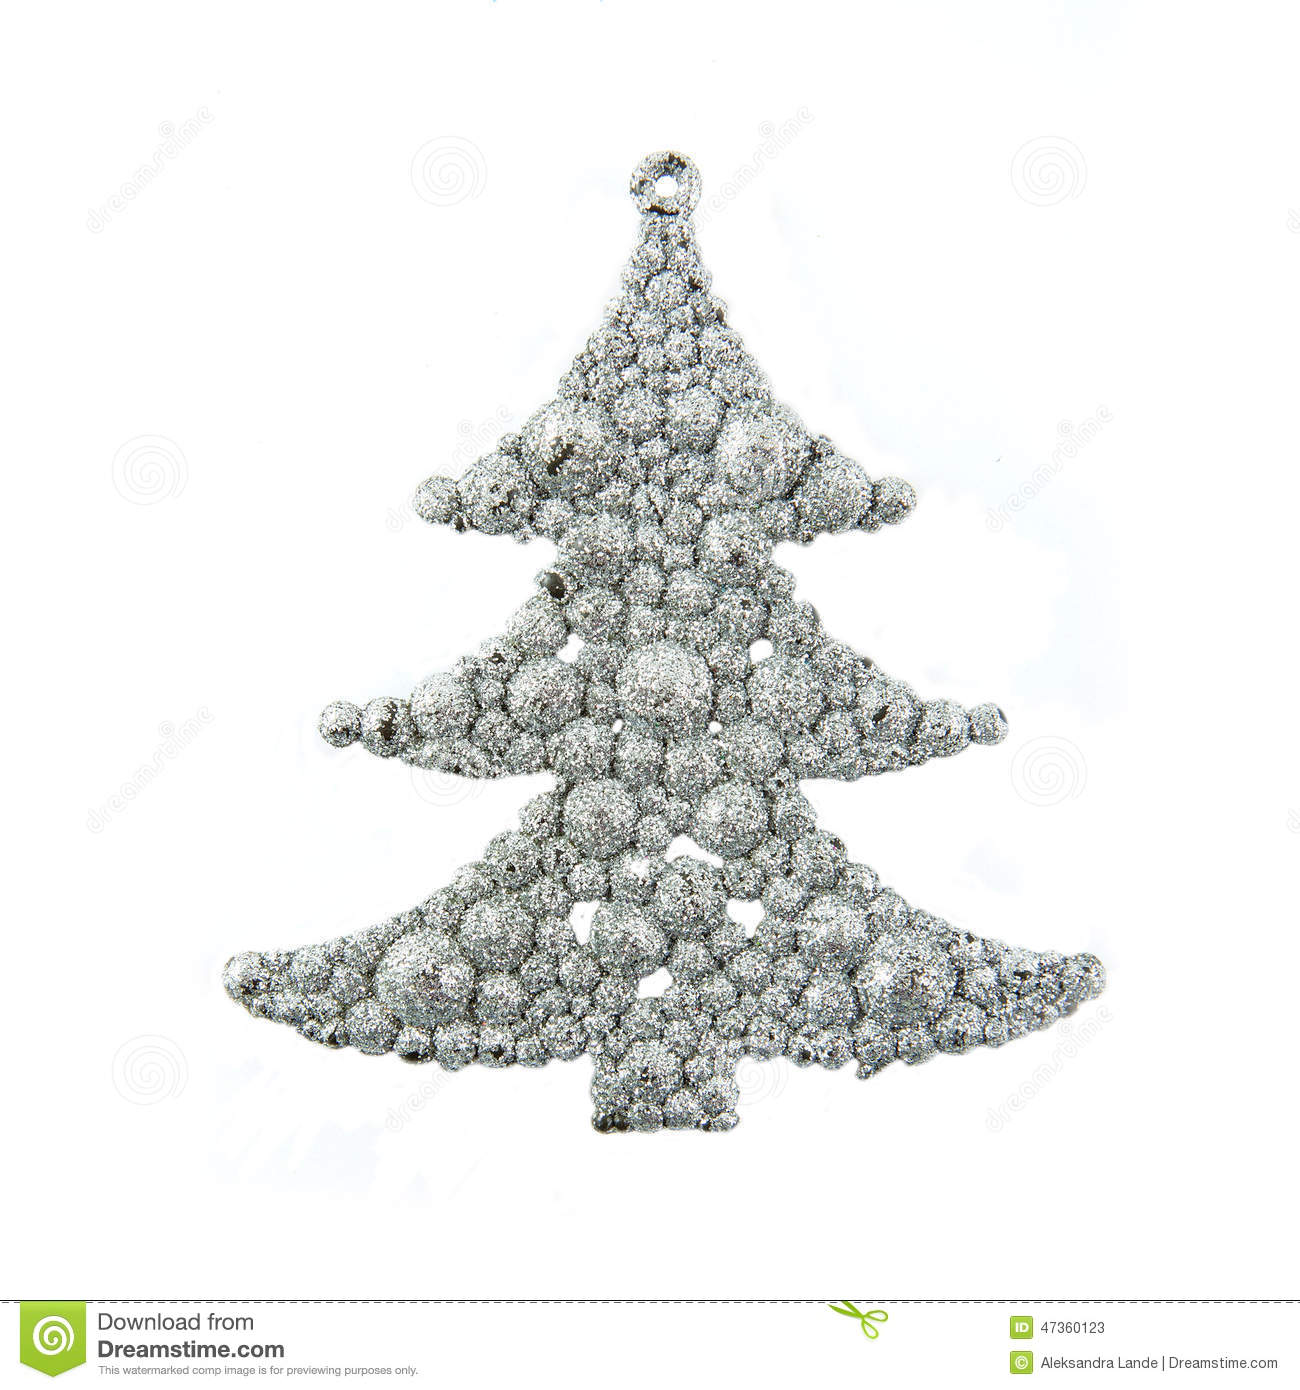 Zilveren Kerstboom Silver Christmas Tree Toy Stock Image Image Of Glittery